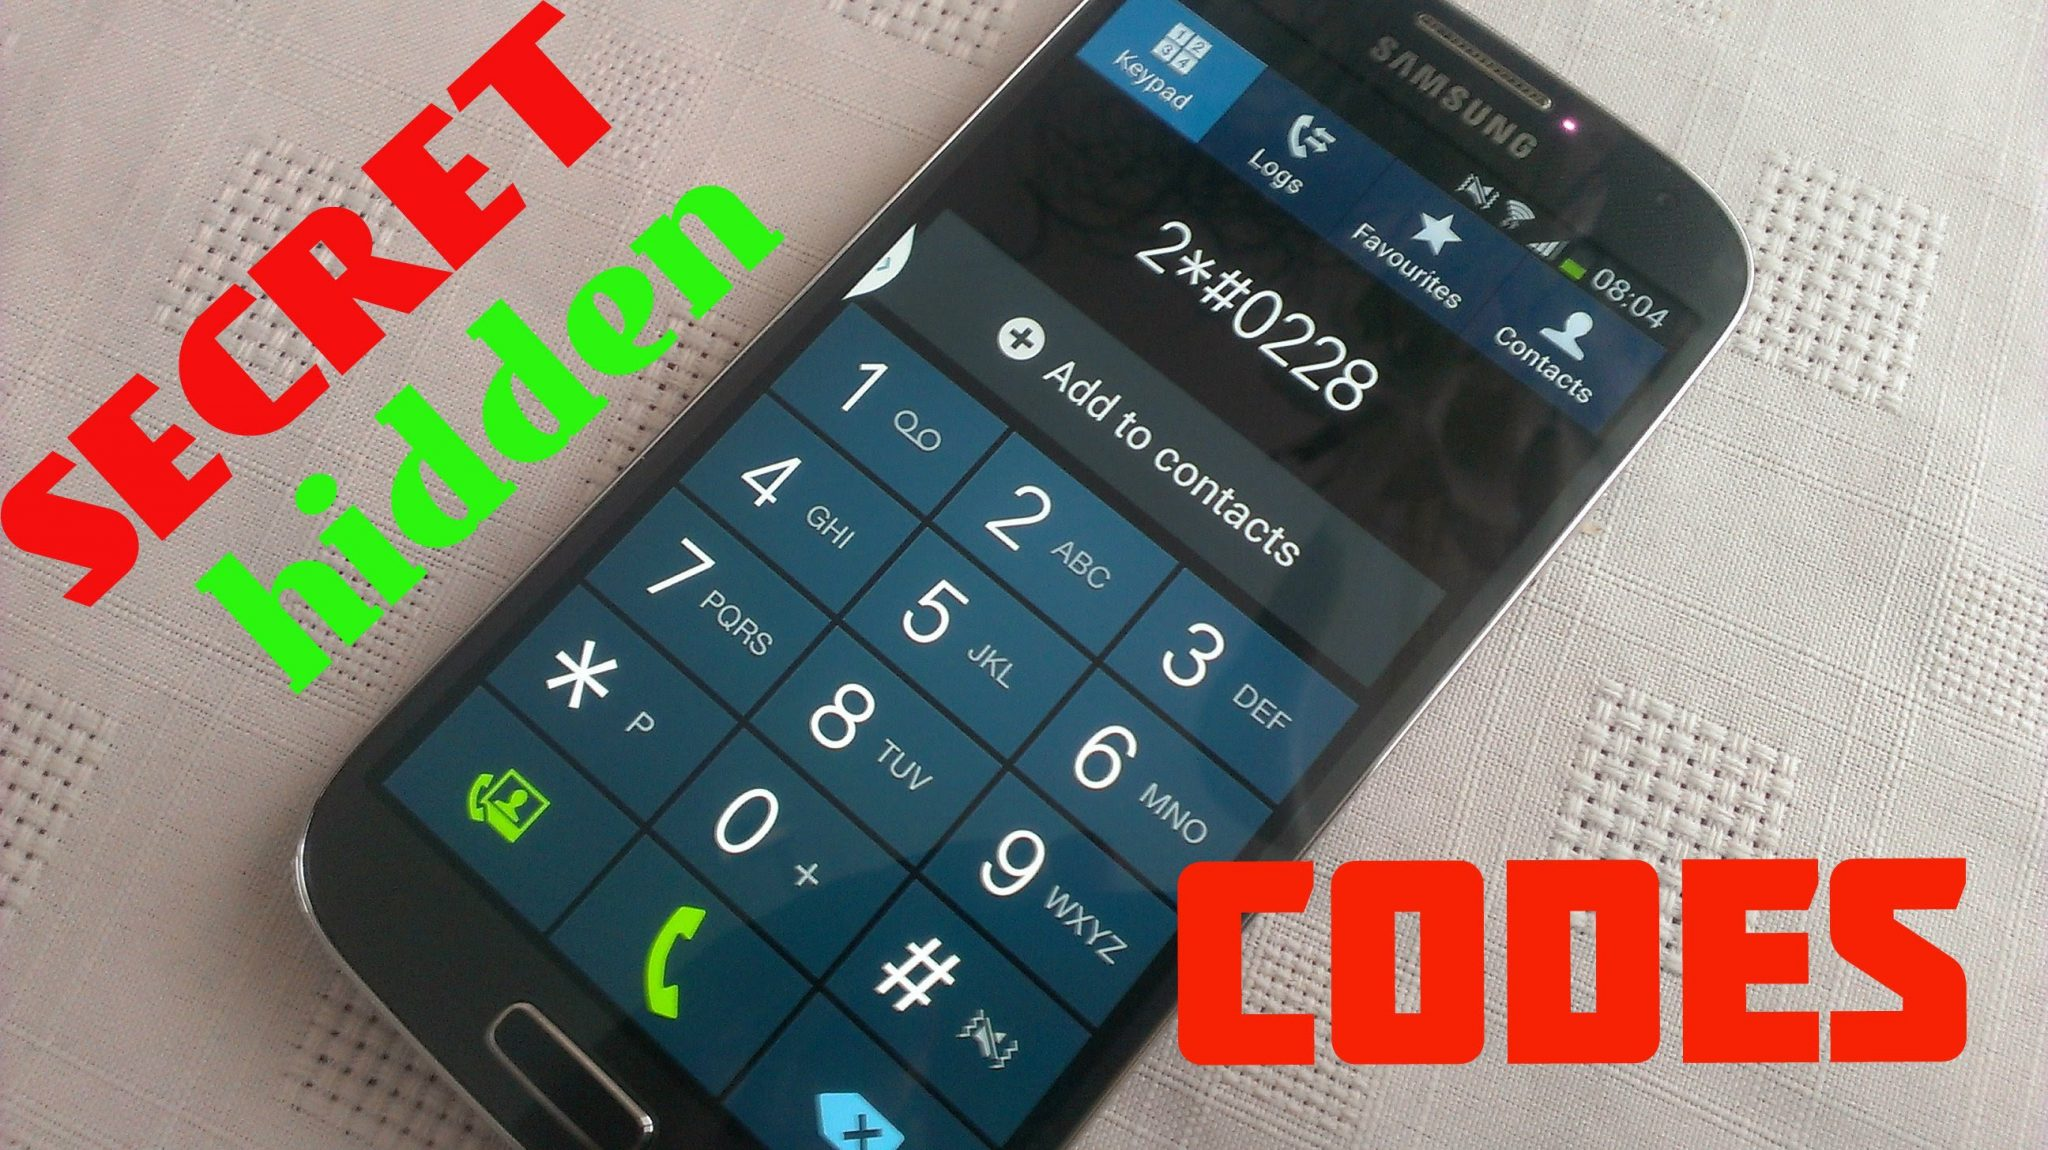 60+ Best Secret Codes To Explore Android 2020 4